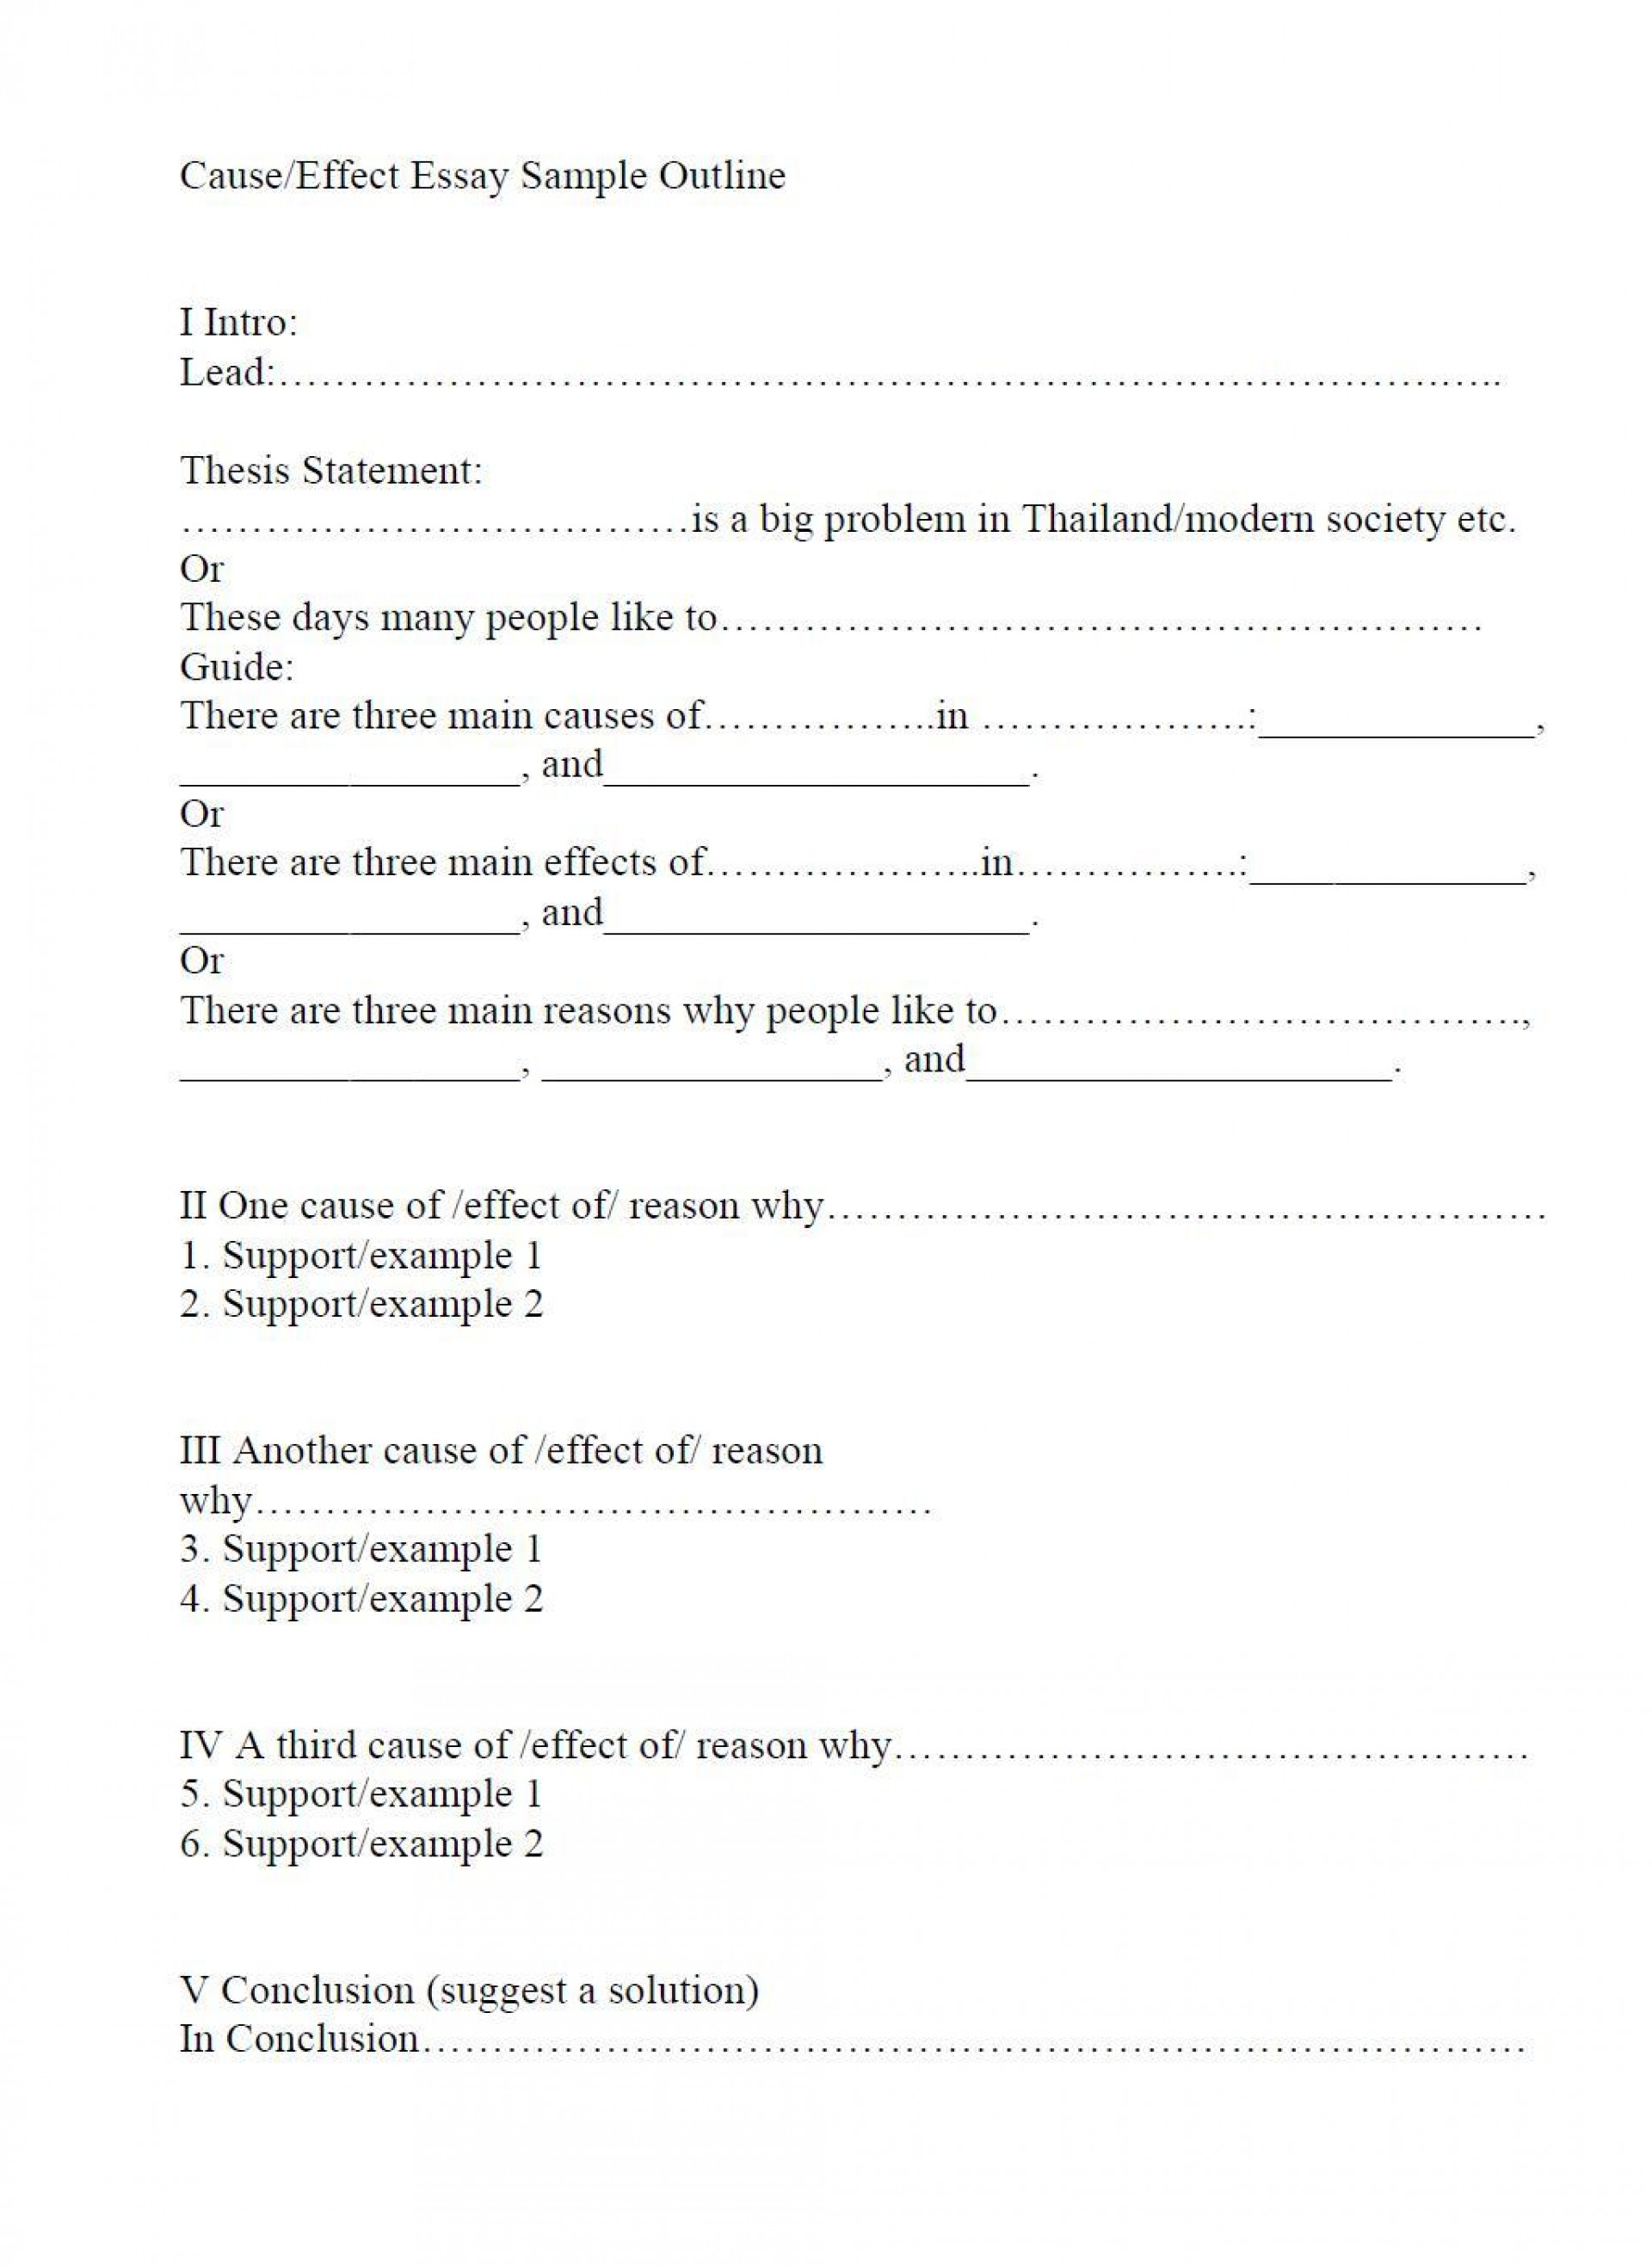 005 Opinion Essay Outline Format Toulmin Striking Method 1920